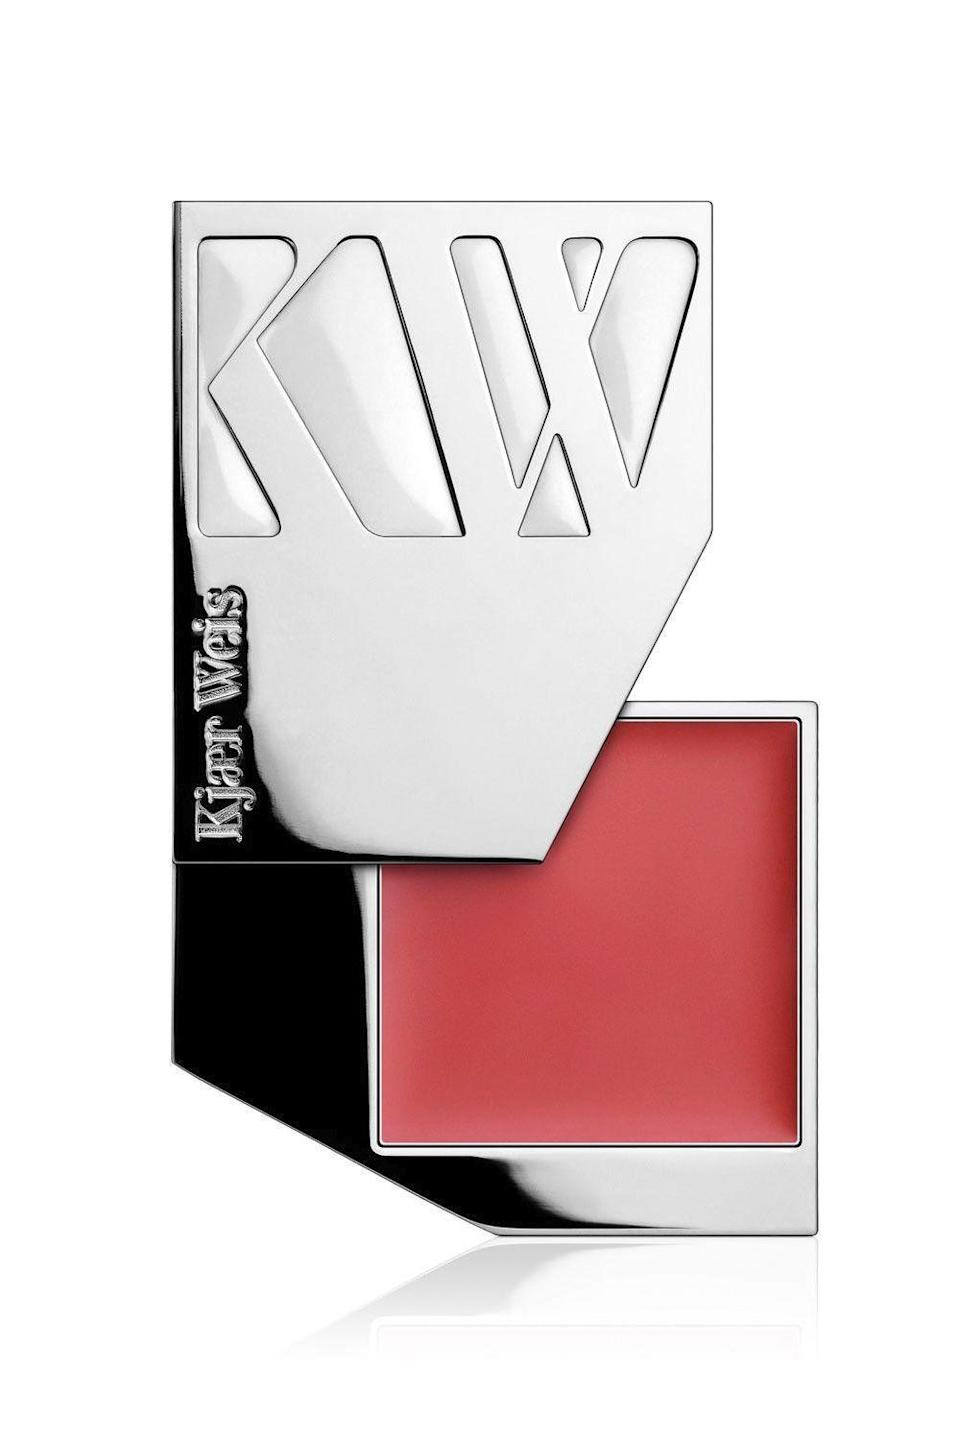 "<p><strong>Kjaer Weis</strong></p><p>kjaerweis.com</p><p><strong>$32.00</strong></p><p><a href=""https://kjaerweis.com/products/cream-blush-iconic-edition-blossoming"" rel=""nofollow noopener"" target=""_blank"" data-ylk=""slk:Shop Now"" class=""link rapid-noclick-resp"">Shop Now</a></p><p>Thanks to a waxy formula that stays put, you won't have to worry about this <a href=""https://www.cosmopolitan.com/style-beauty/g28219267/best-cream-blushes/"" rel=""nofollow noopener"" target=""_blank"" data-ylk=""slk:cream blush"" class=""link rapid-noclick-resp"">cream blush</a> ghosting your cheeks. Don't get confused—waxy doesn't equal heavy. The blend of sweet almond and jojoba seed oil means that<strong> the pigmented shade melts right into your skin,</strong> giving your face a nice, warm glow. <strong><br></strong></p><p><strong>✨ PROMOTION:</strong> 15% off with promo code <strong>HAULIDAY</strong></p>"